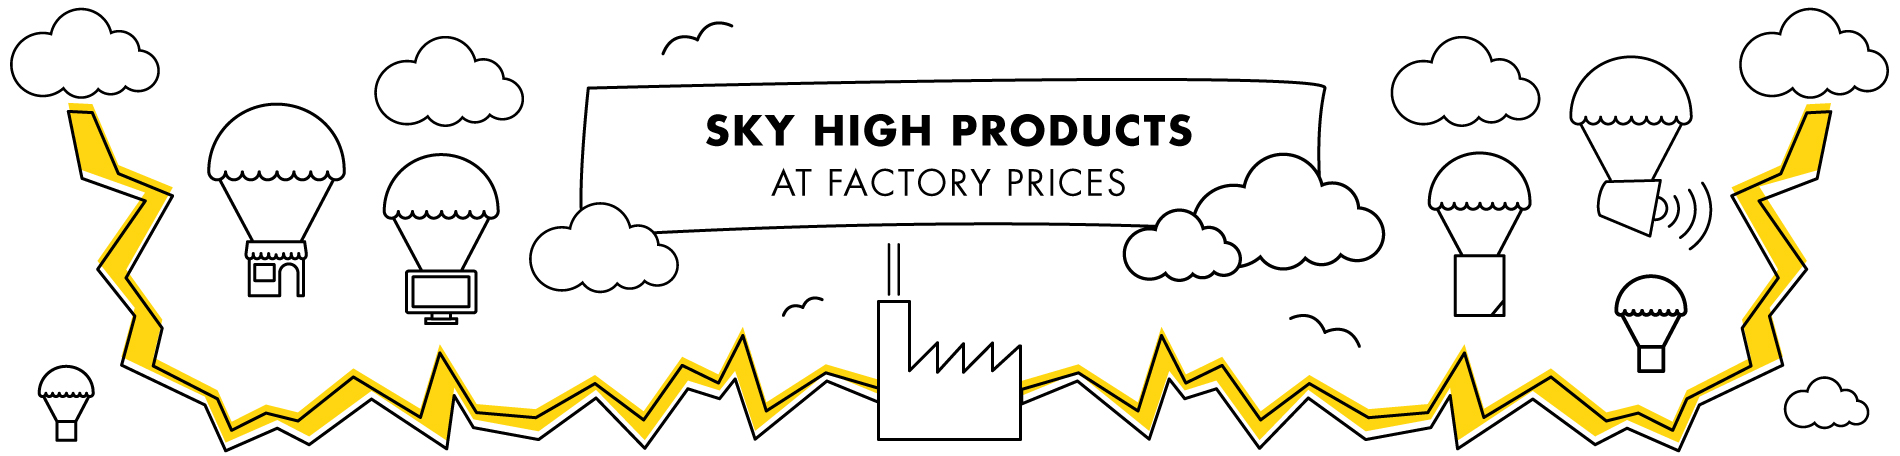 sky-high-products-slide